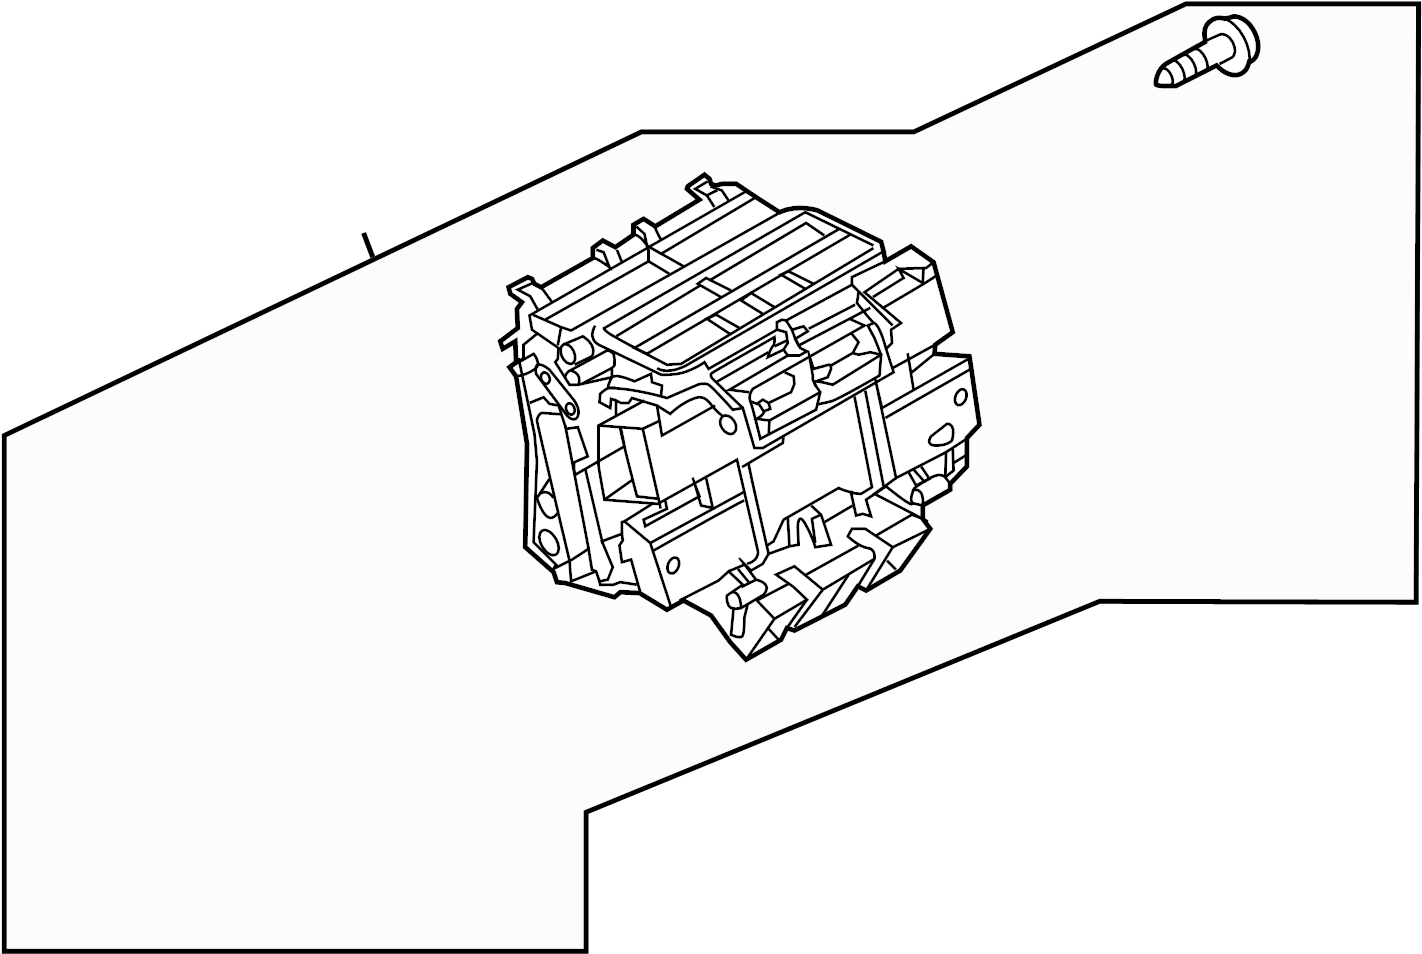 Pontiac Solstice Cooling System moreover Pontiac G5 Horn Location furthermore 2004 Audi Allroad Wiring Diagram further P0101 Pontiac Solstice Wiring Diagrams in addition Junction Block Wiring Harness Instrument Panel Fuse Box 25781327. on pontiac solstice fuse box location